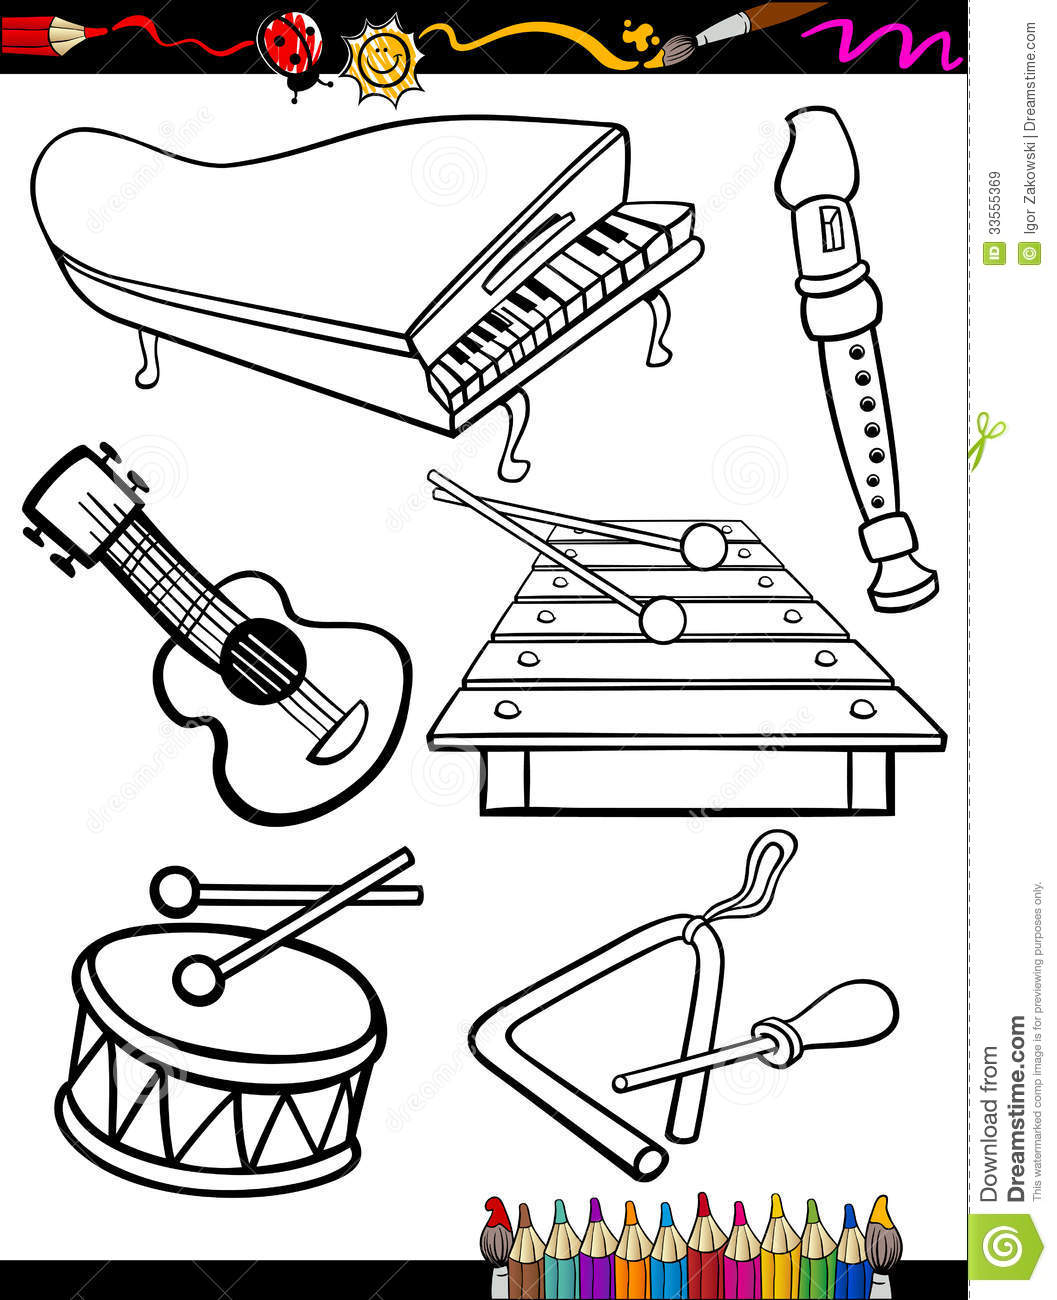 cartoon music instruments coloring page stock vector